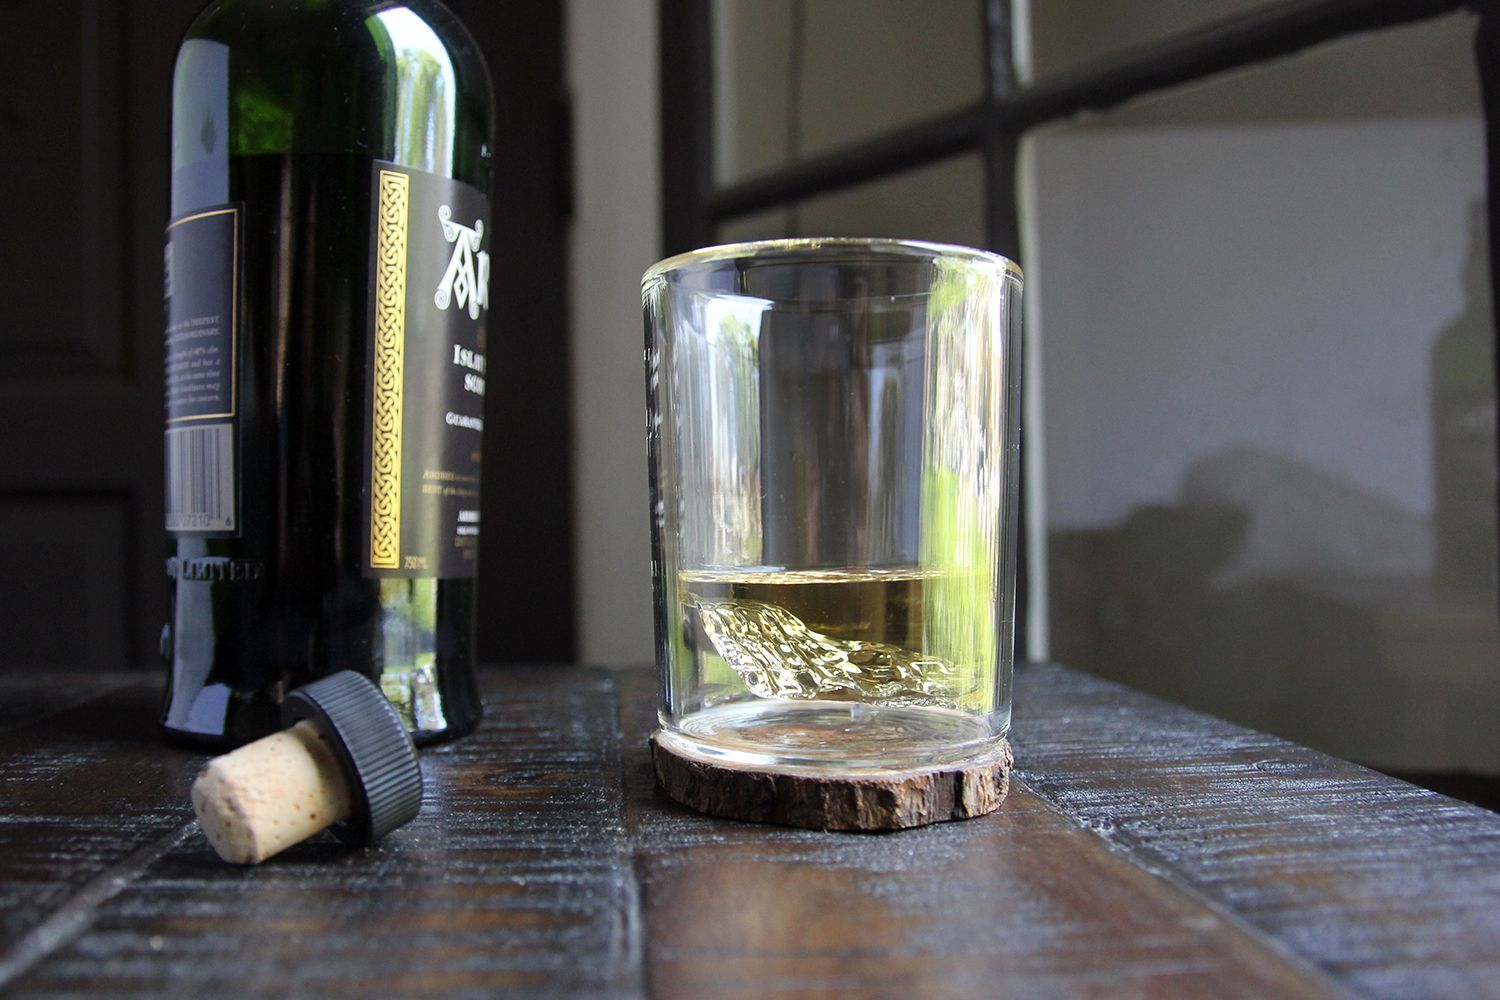 Huckberry Whiskey Peaks Glasses Review: An Up-and-coming Sip